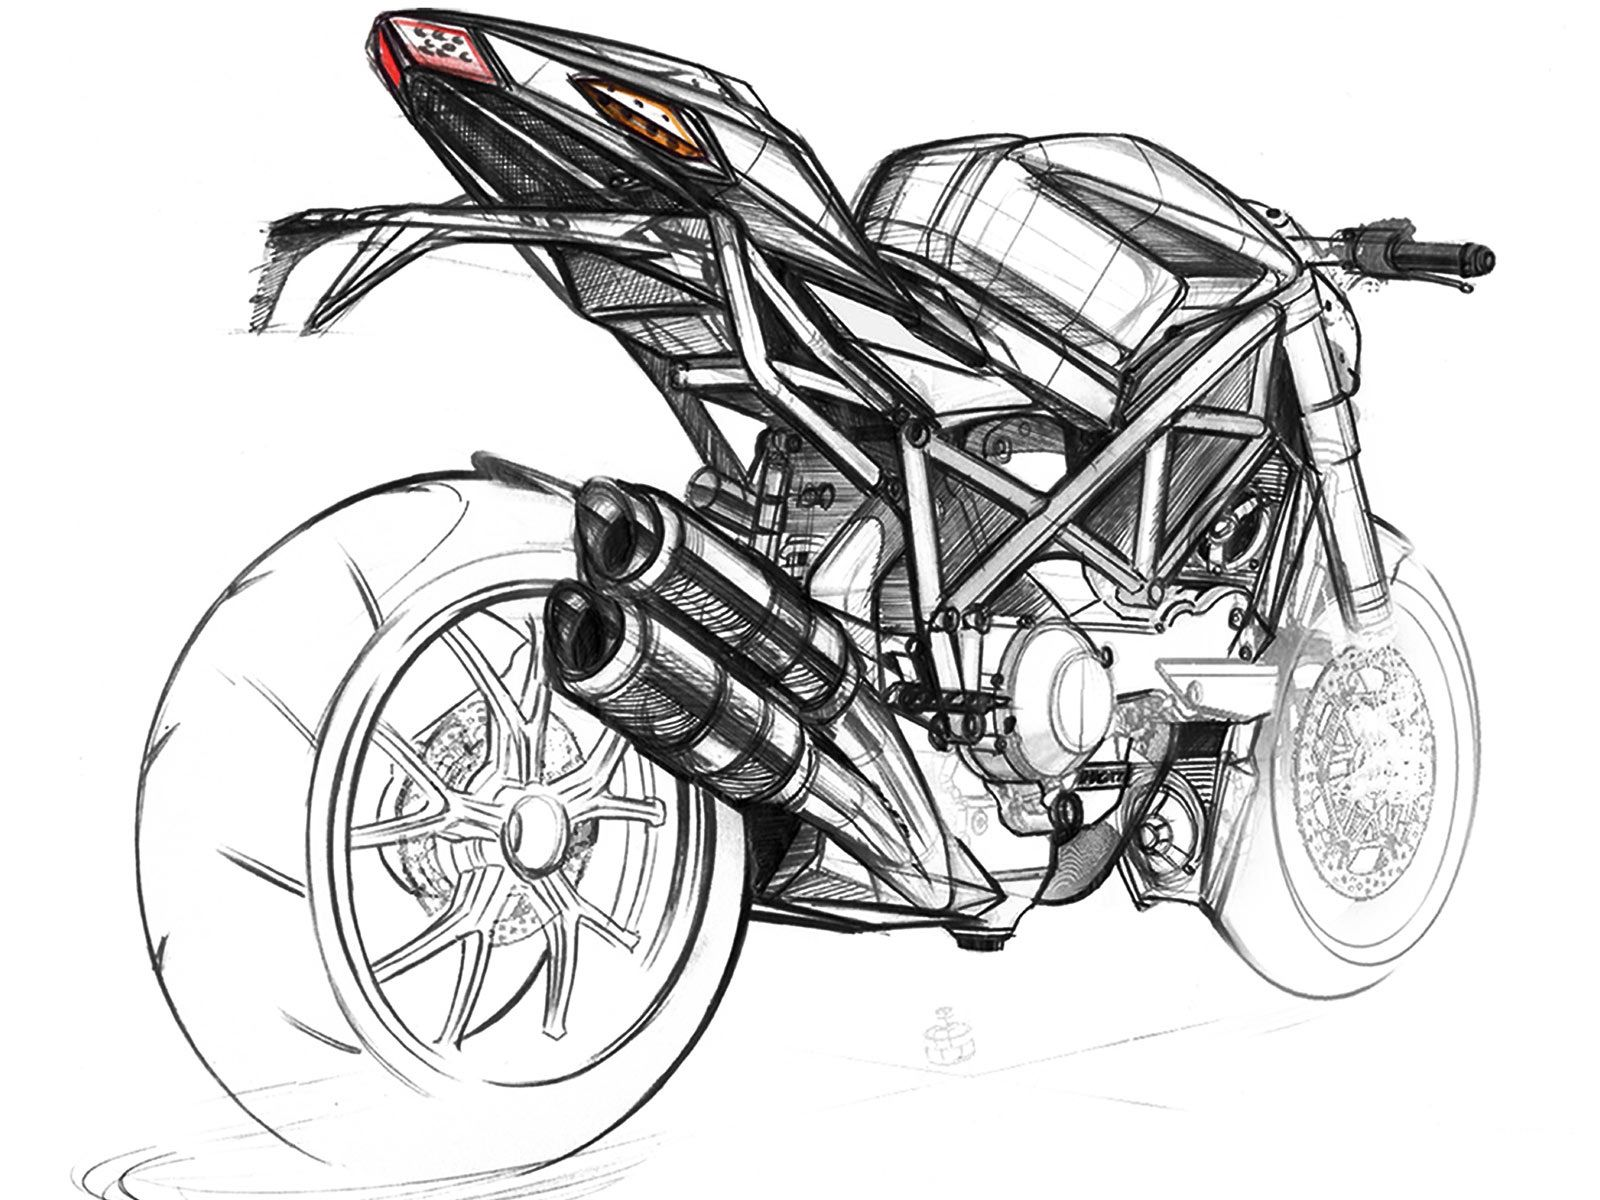 Ducati Streetfigter Sketch Rear | Art and Design | Pinterest ...